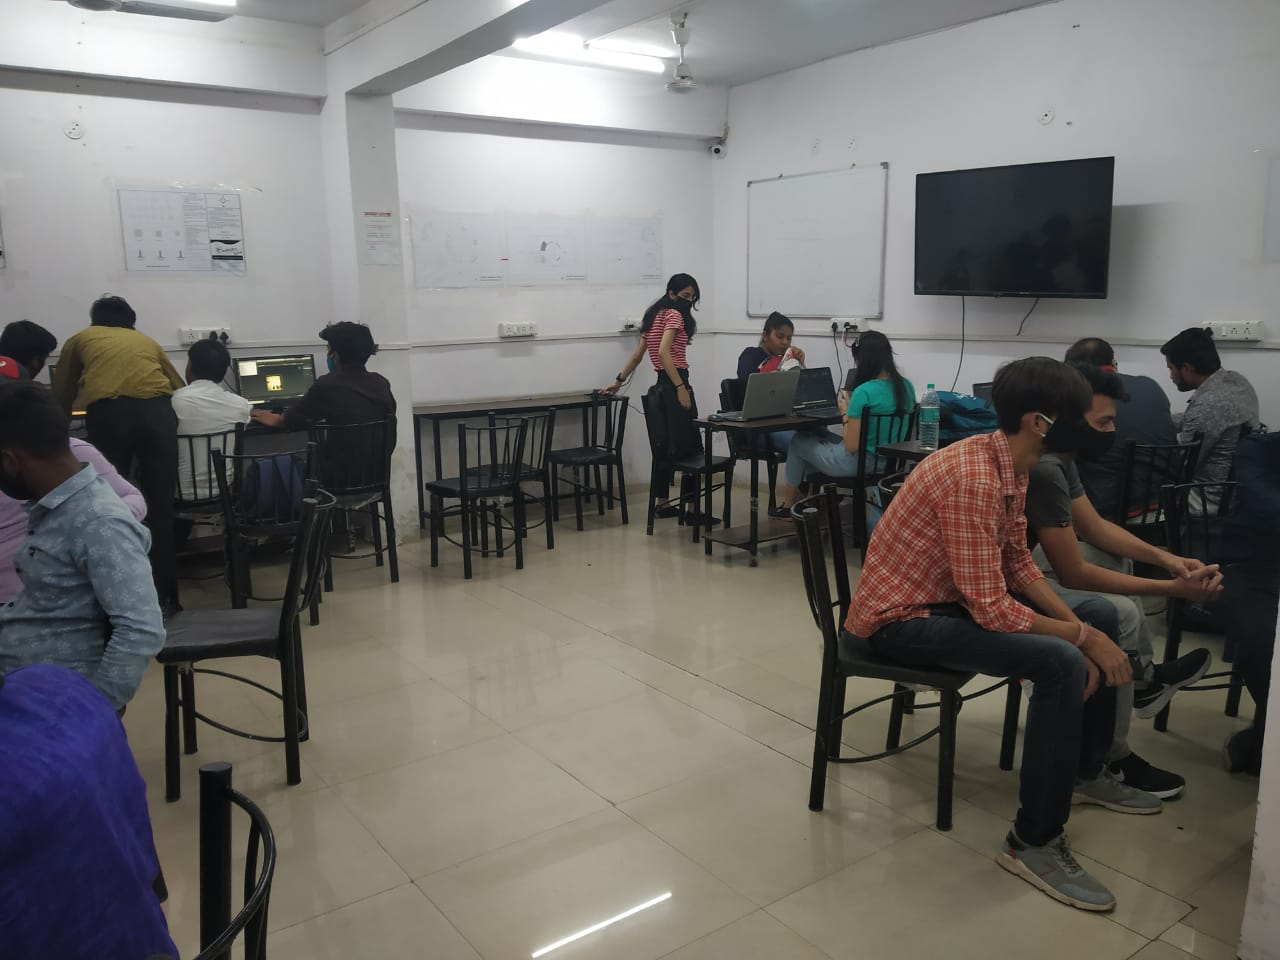 design-centre-institute-of-creativity-and-innovation-indore-chhindwara-gallery (22)